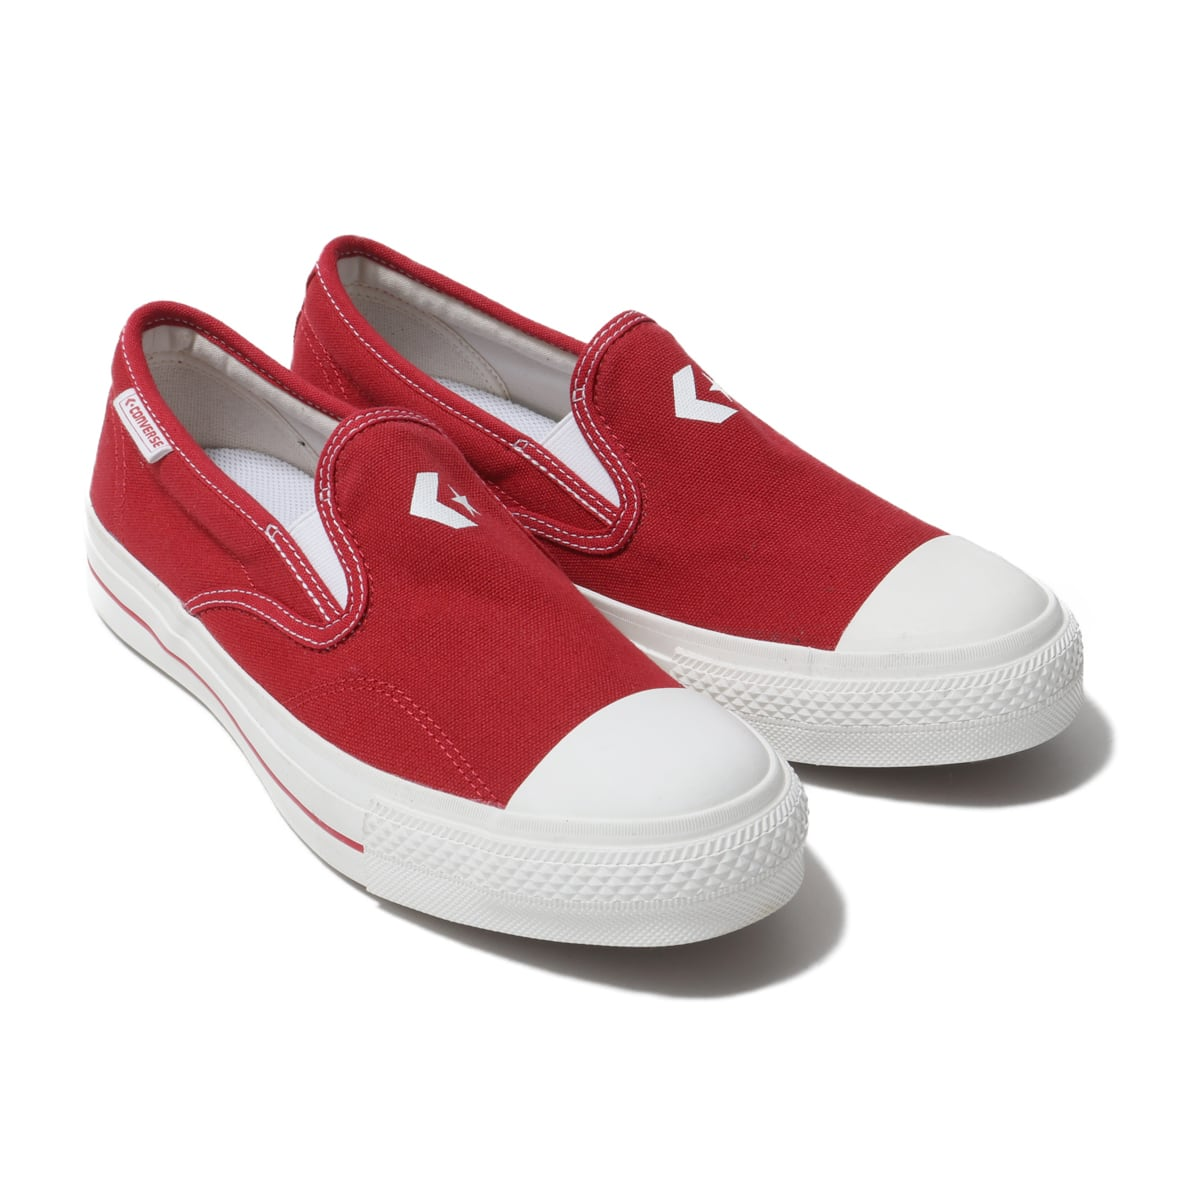 CONVERSE CITYRIDE SK SLIP-ON RED 19HO-I_photo_large